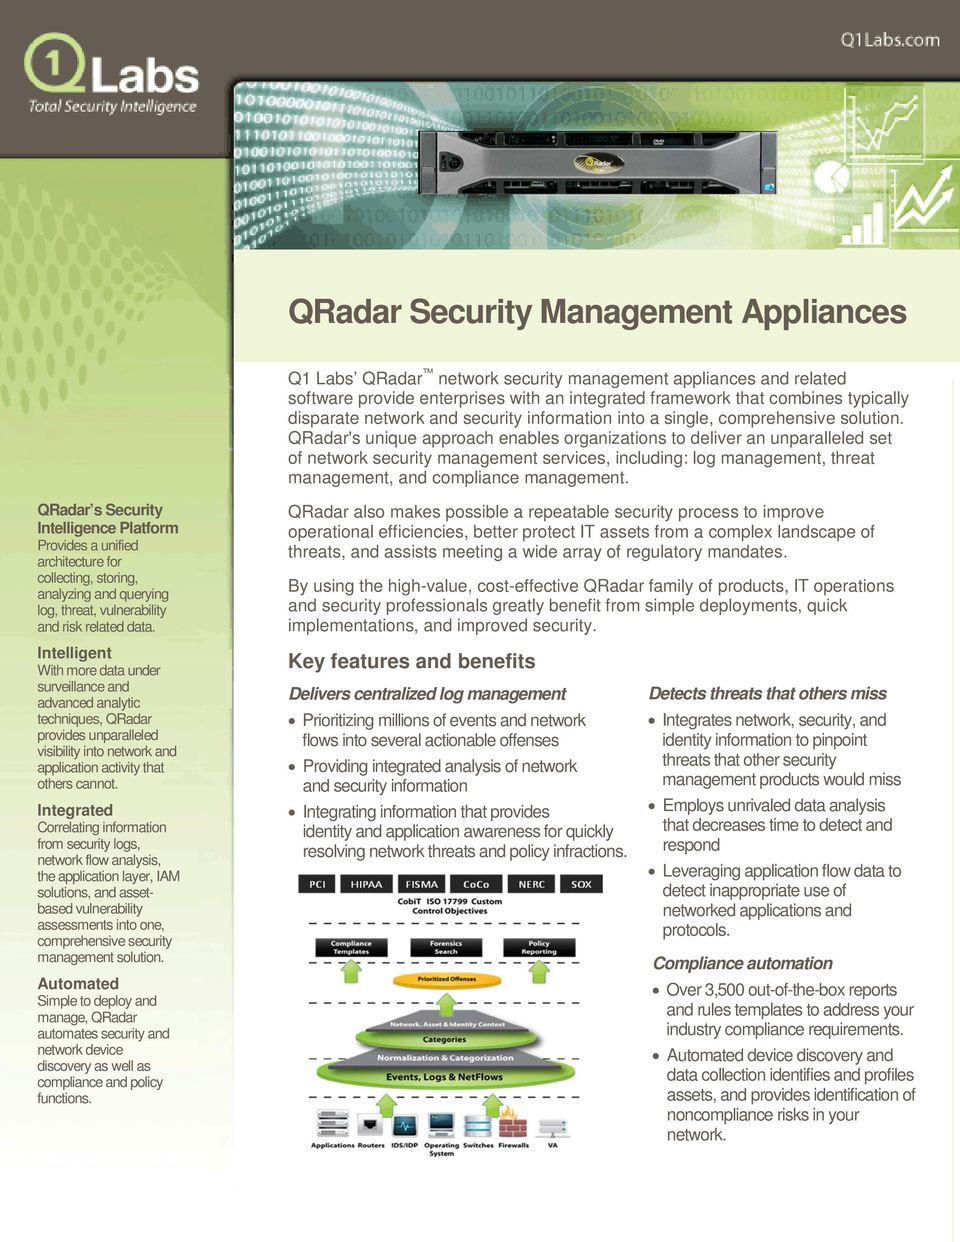 QRadar's unique approach enables organizations to deliver an unparalleled set of network security management services, including: log management, threat management, and compliance management.